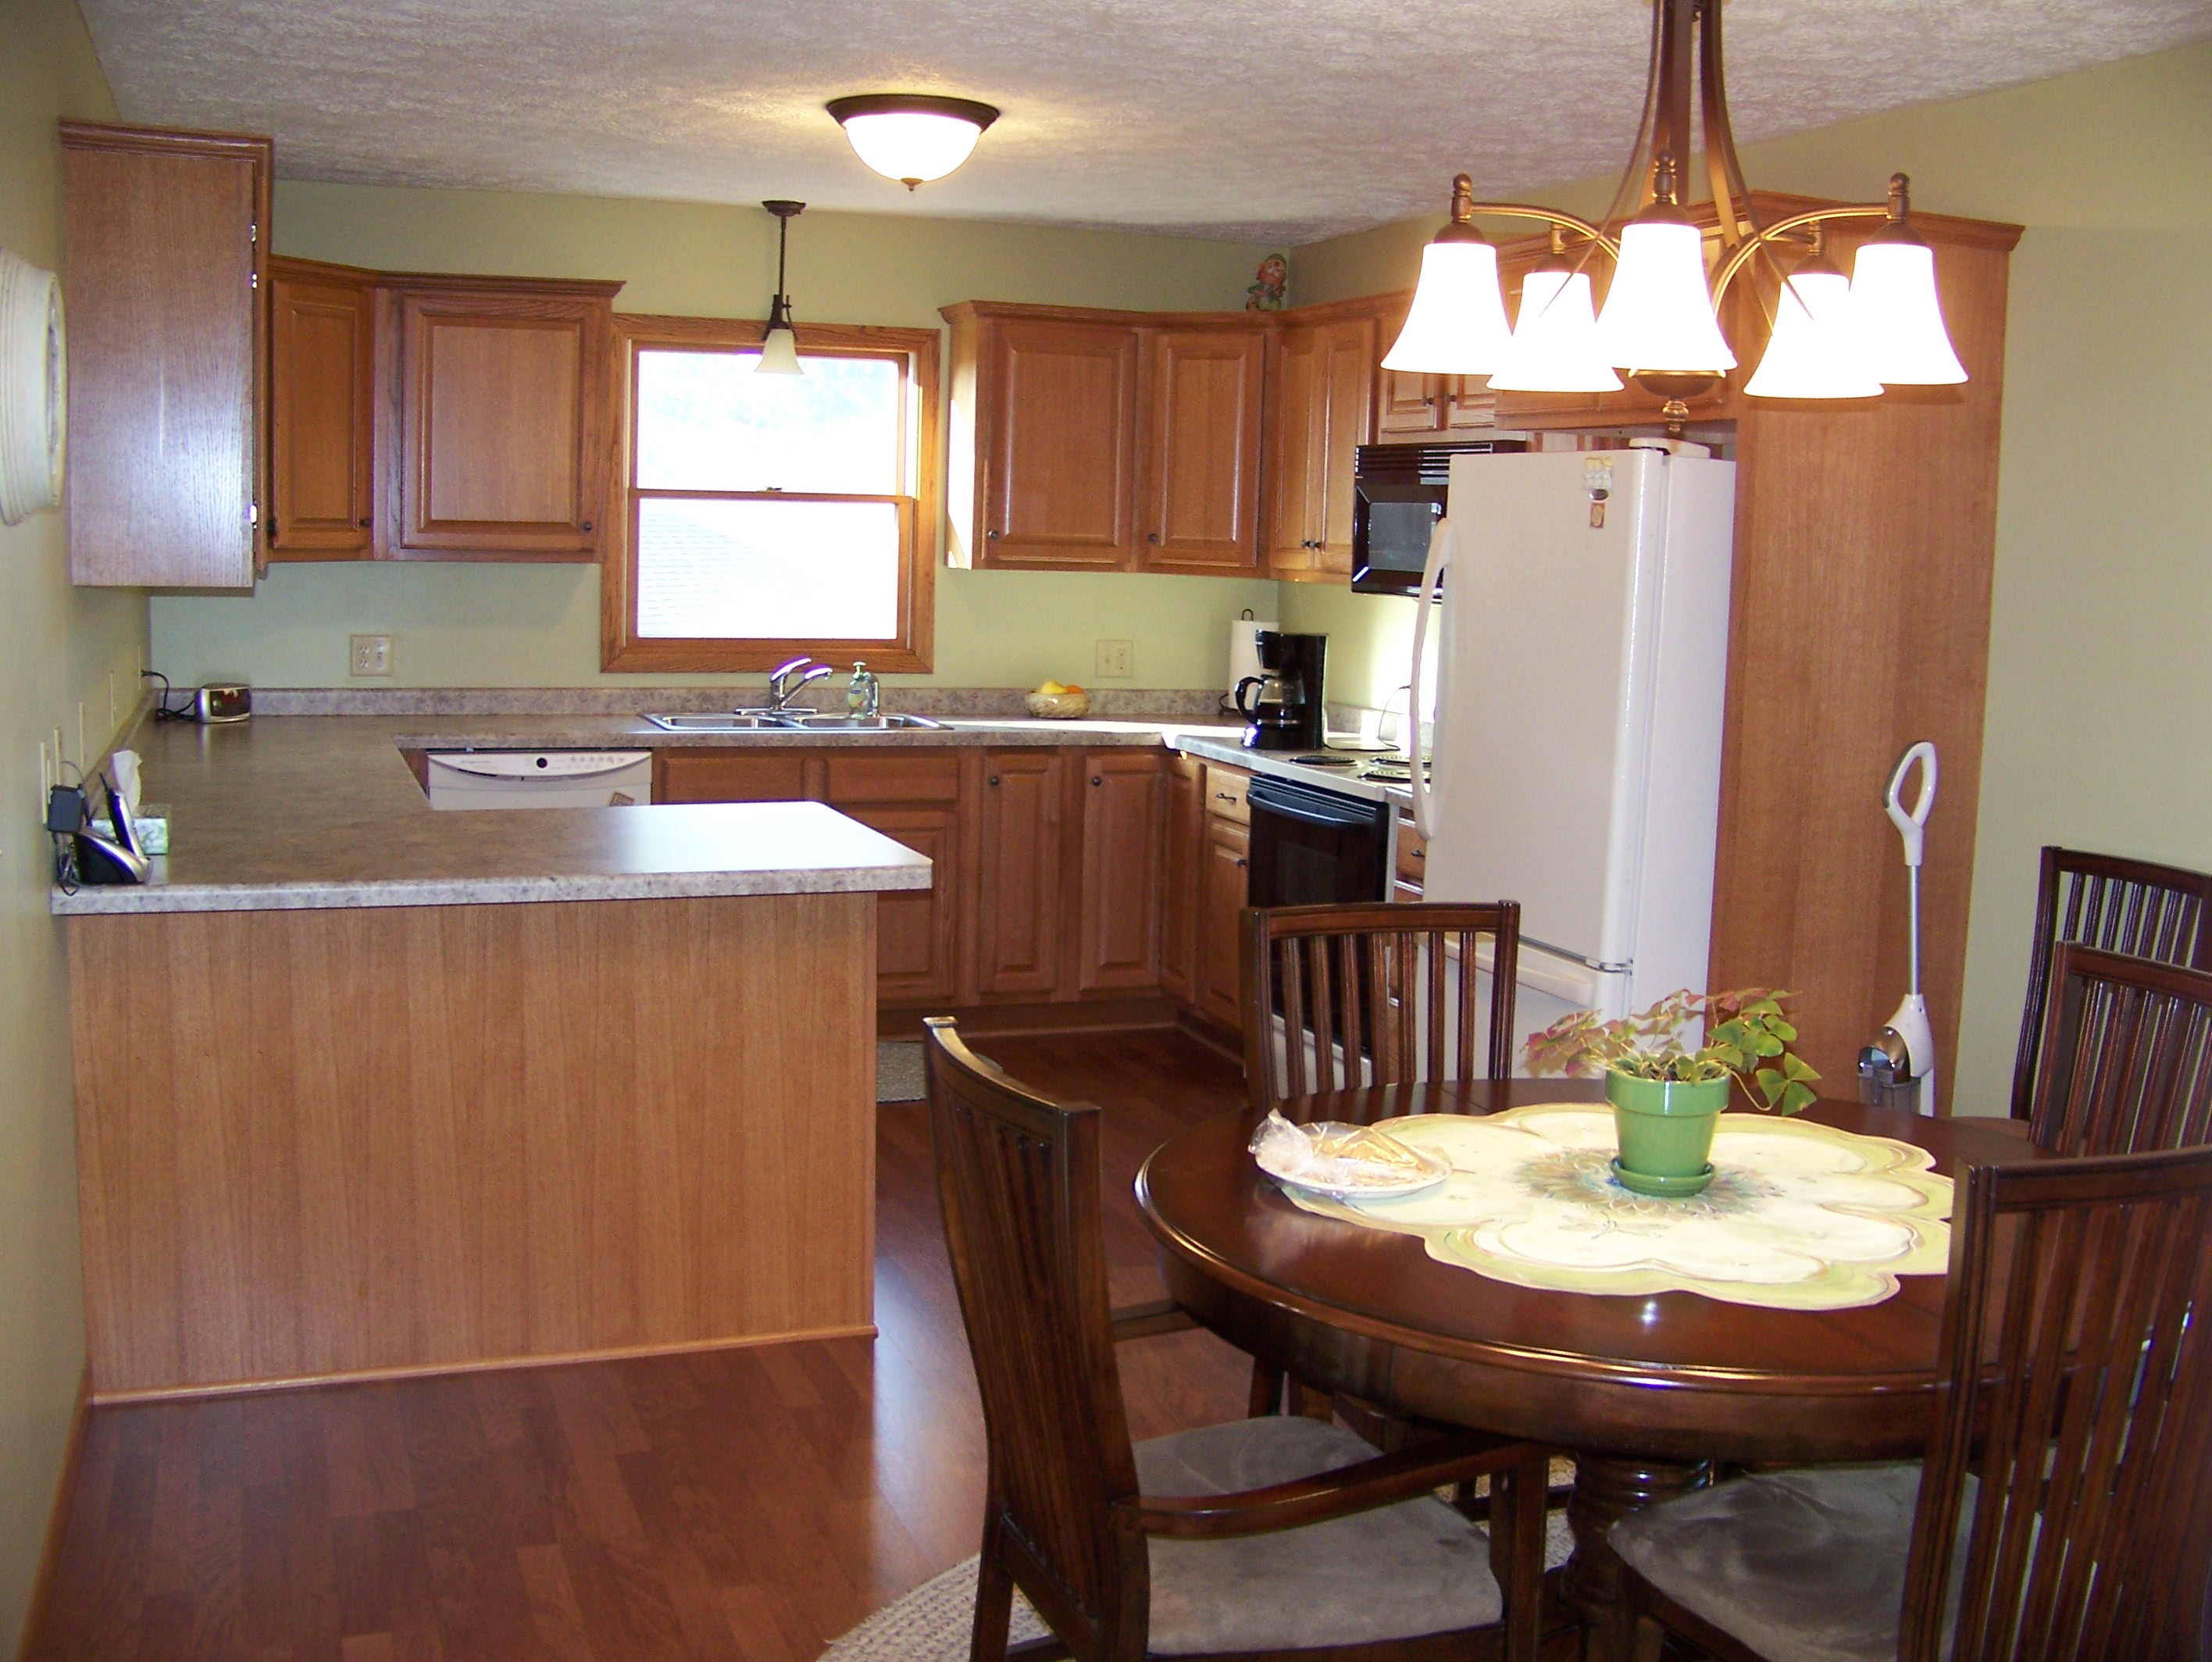 Before And After  Schmidt Homes. Kitchen Makeover Bolton. Green Kitchen Ideas Design. Kitchen Chairs Kijiji Toronto. Red Kitchen Knives. Modern Kitchen Wood. Kitchen Remodel Reddit. Kitchen Table And Chairs For Sale. Used Kitchen Cabinets